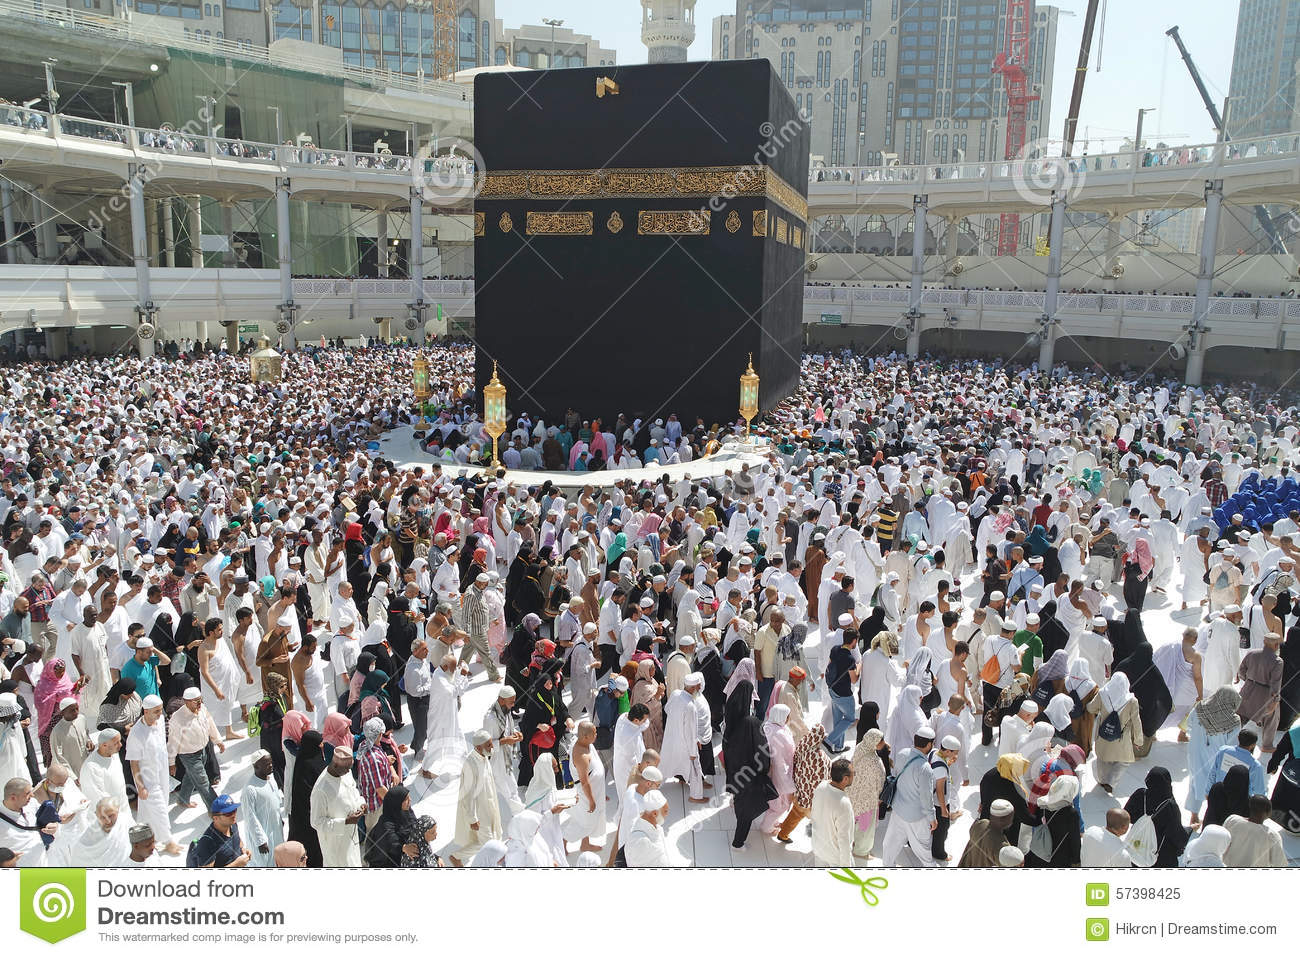 mecca muslim personals An openly gay muslim has risked death by  openly gay muslim secretly films documentary on pilgrimage to mecca  craigslist bans personals section.